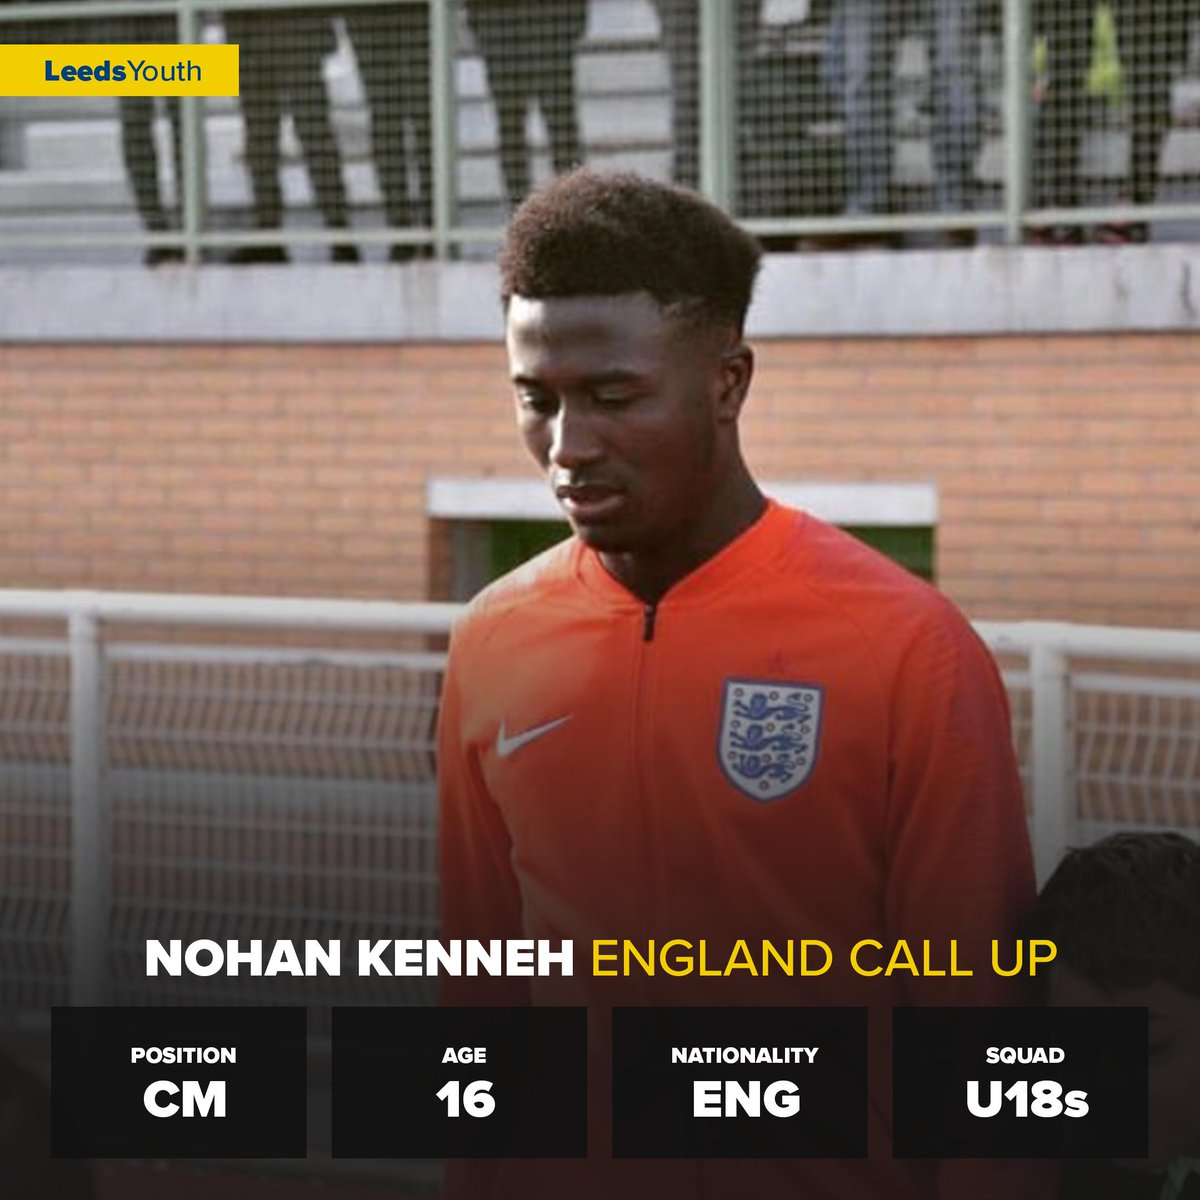 Congratulations to #LUFC U18s midfielder Nohan Kenneh, who has been called up to the England U16s Squad to face Norway, France and Brazil.  Huge Talent   #LeedsYouth<br>http://pic.twitter.com/fVb80QzDAb